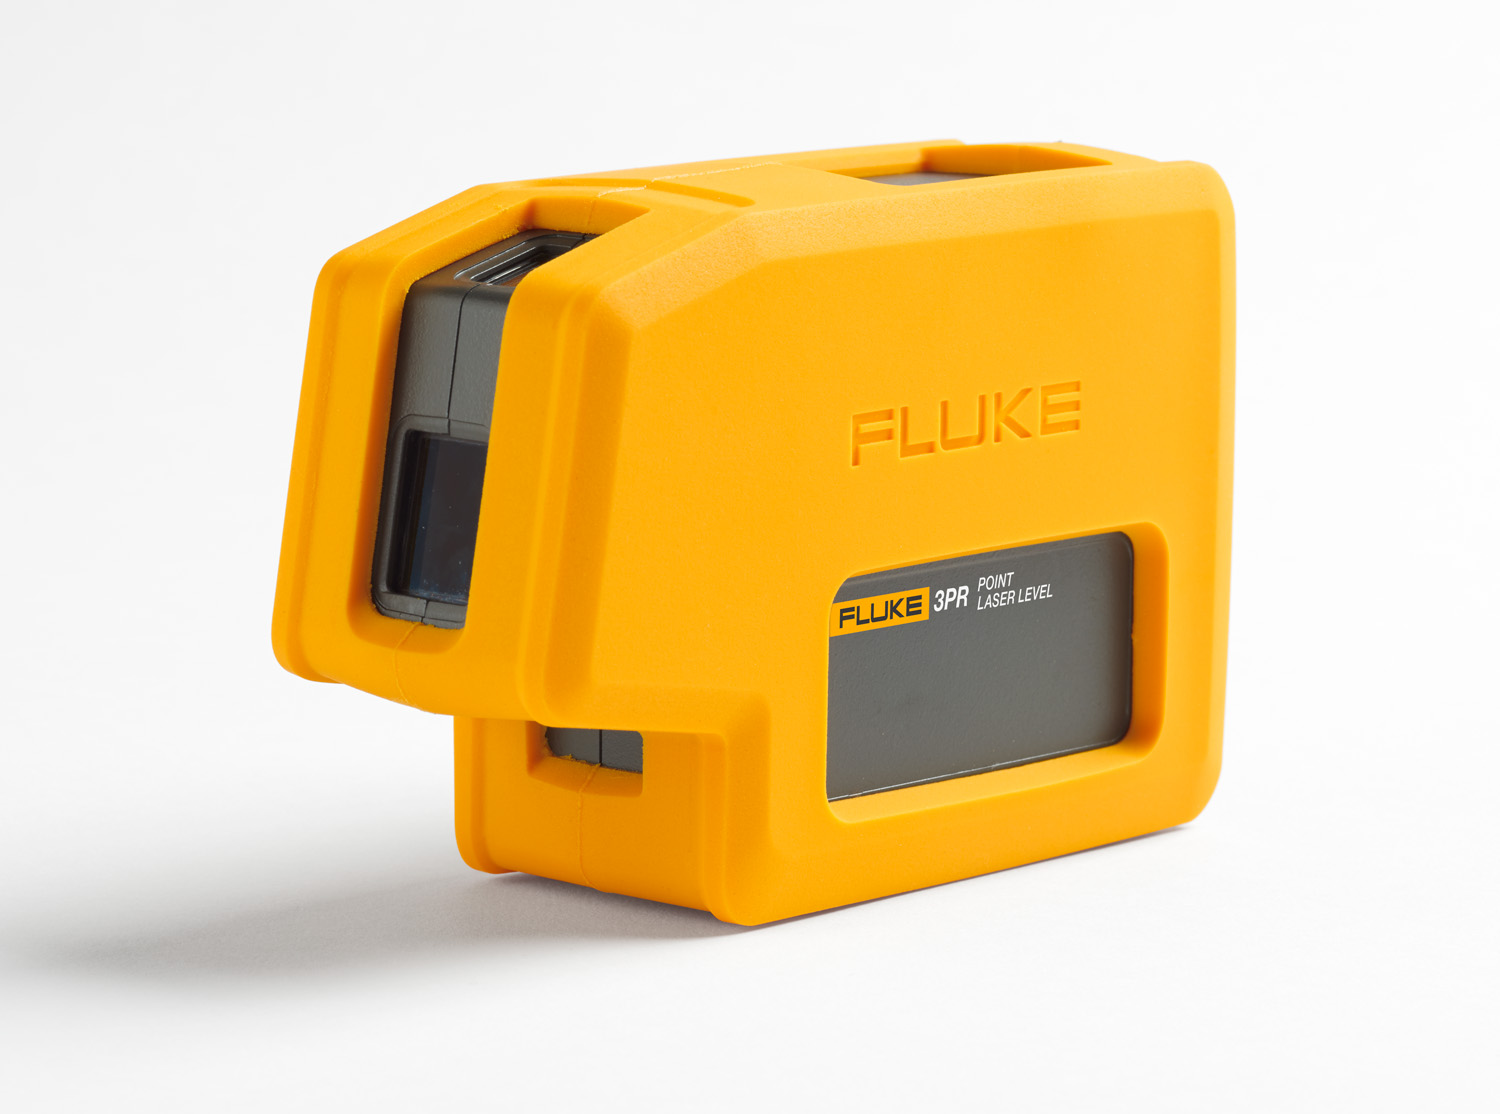 fluke point laser levels